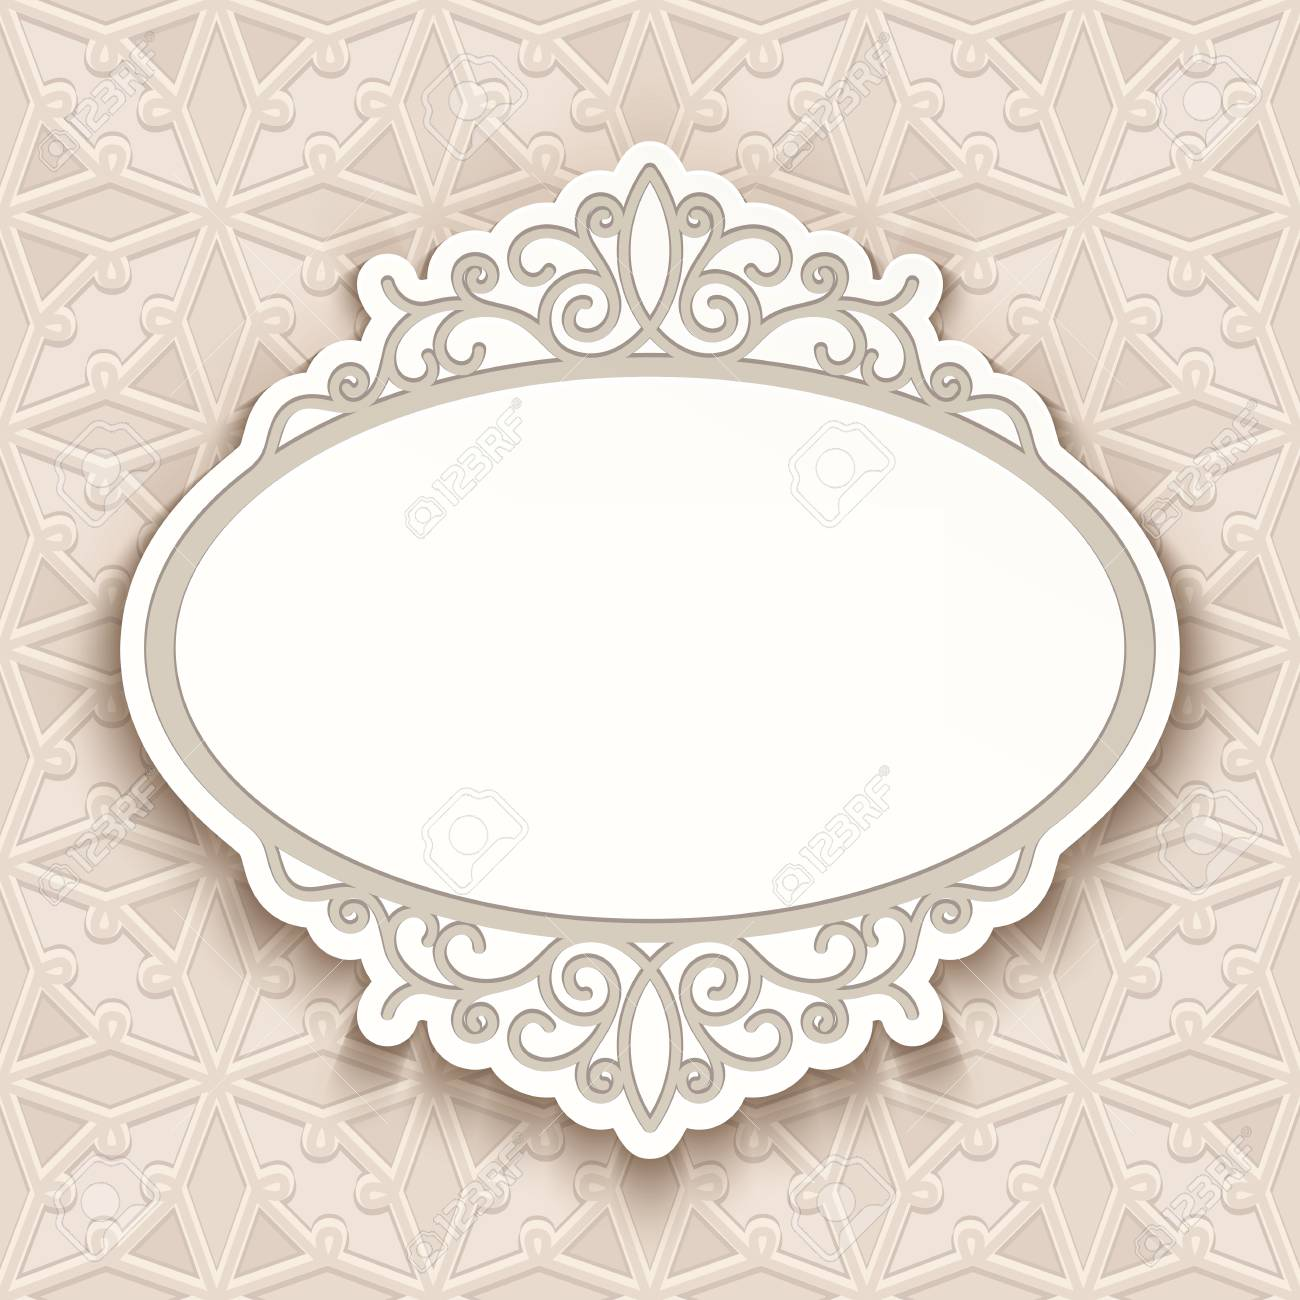 cutout paper frame with